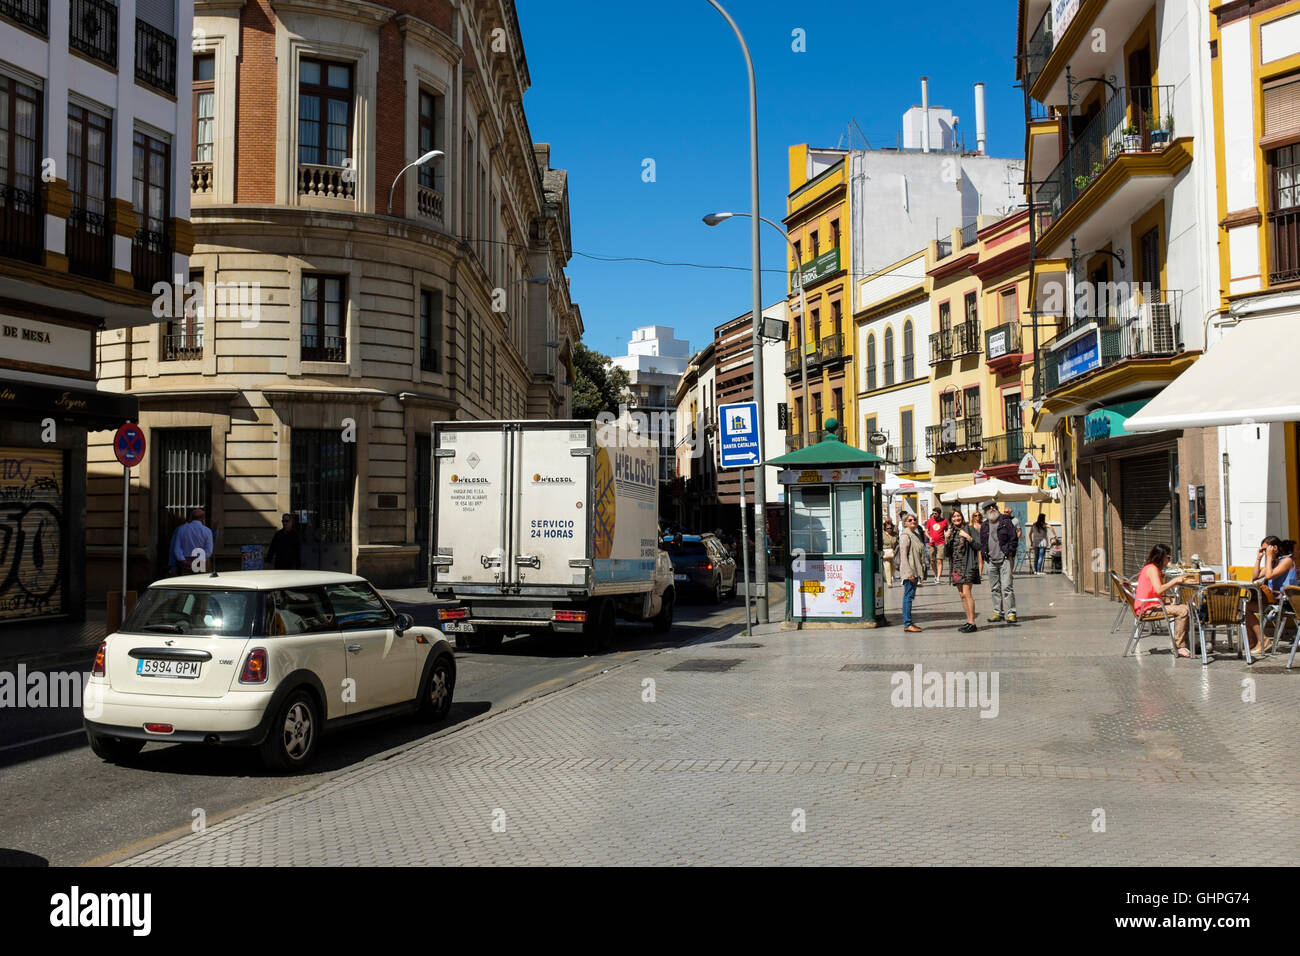 Busy traffic on Calle Almirante Apodaca, in the Al Macarena district of Seville, Spain. - Stock Image